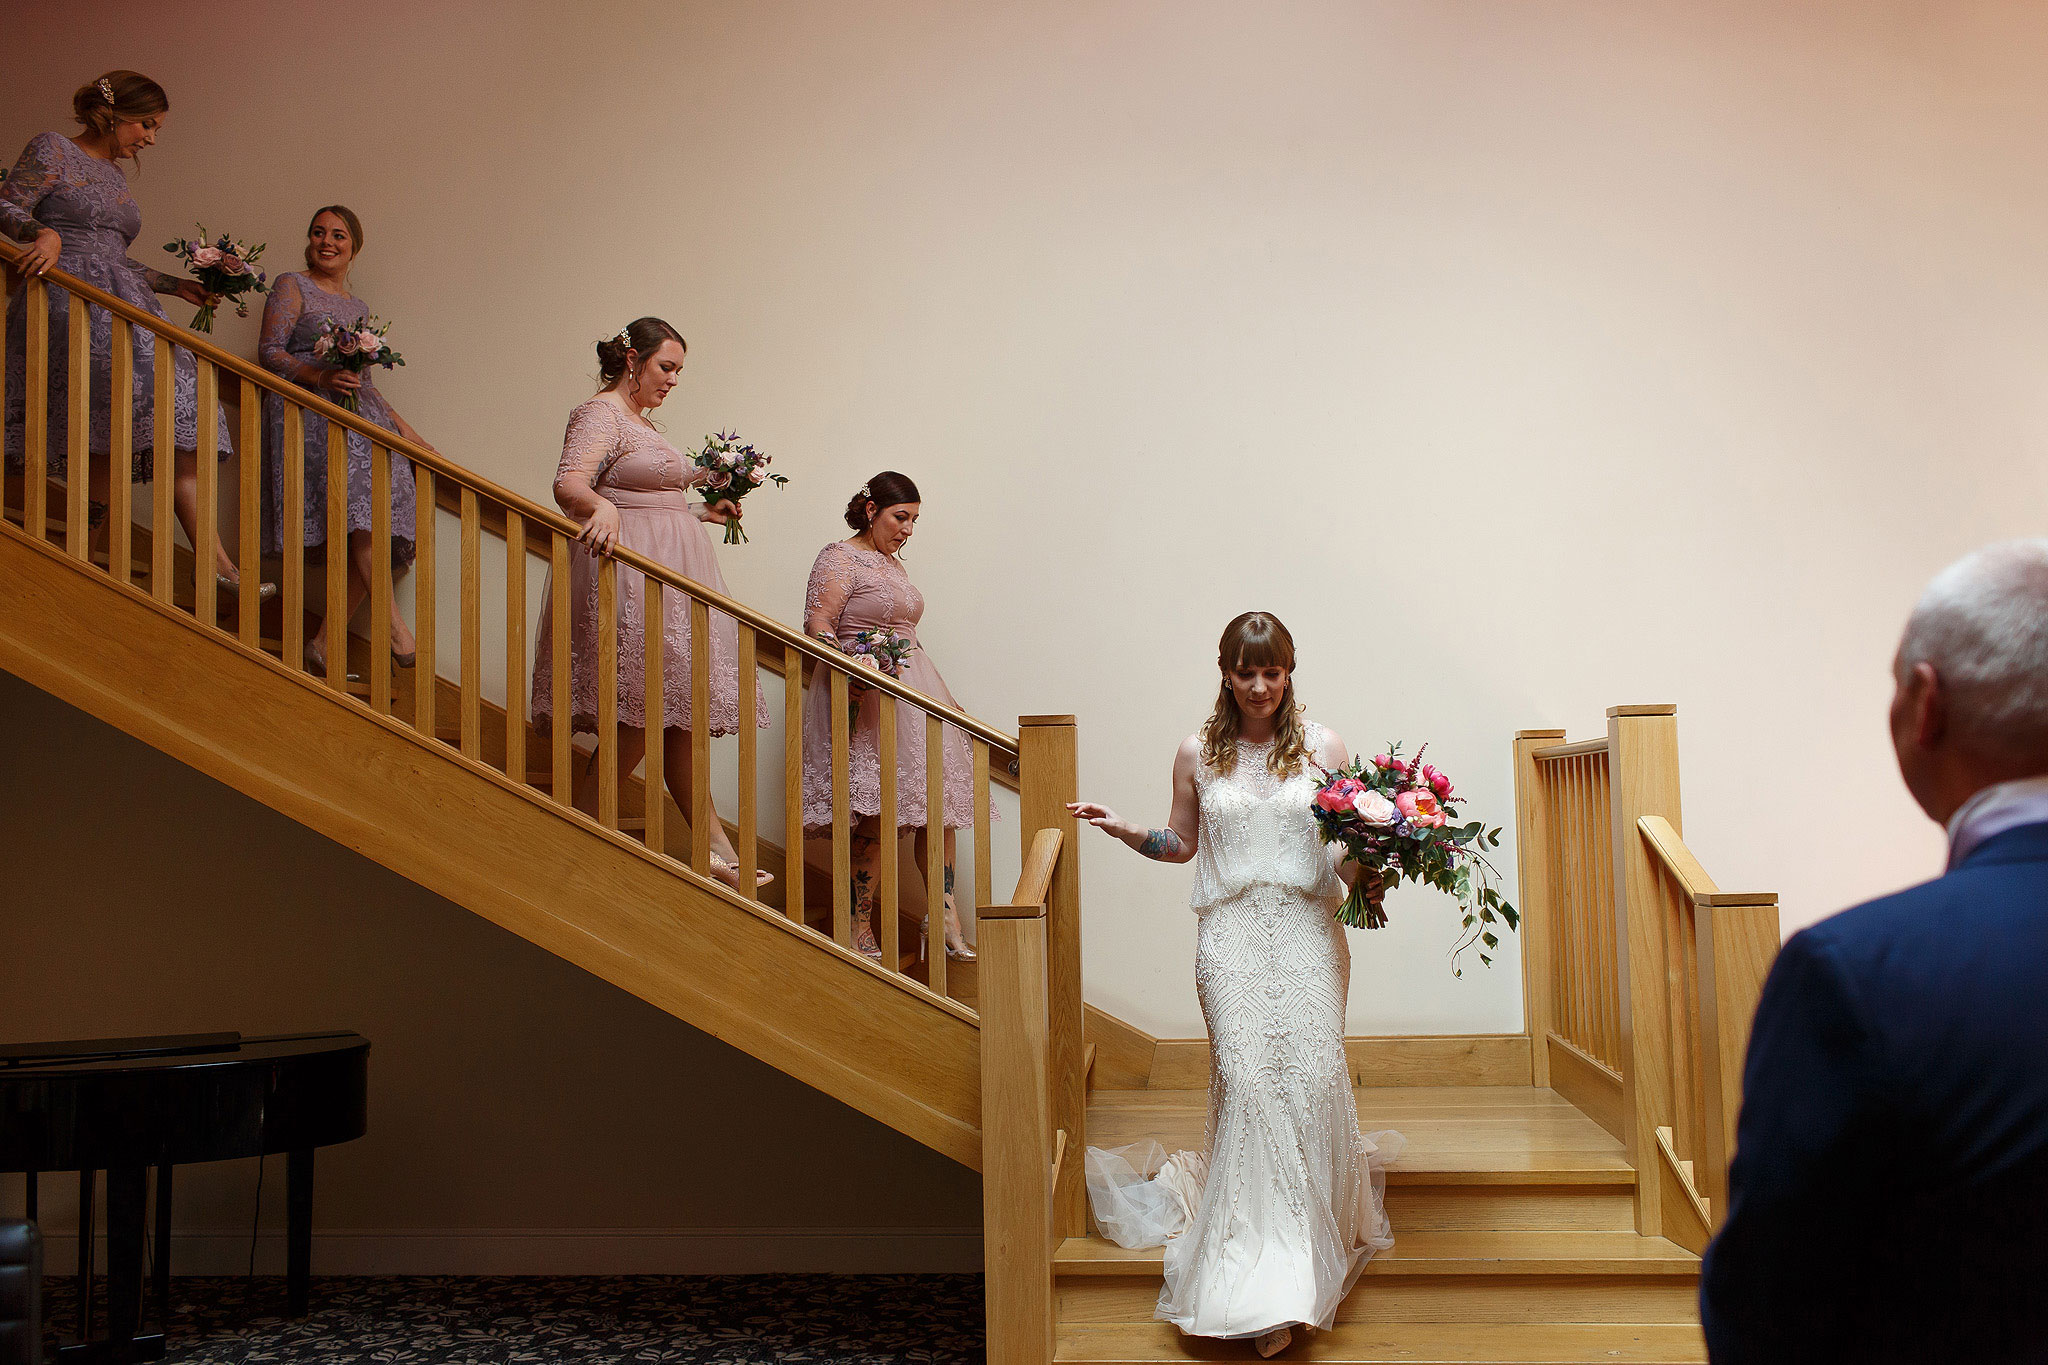 Bride and bridesmaids all walking down the staircase inside the Villa on the way to wedding ceremony - The Villa at Wrea Green Wedding Photography - Toni Darcy Photography